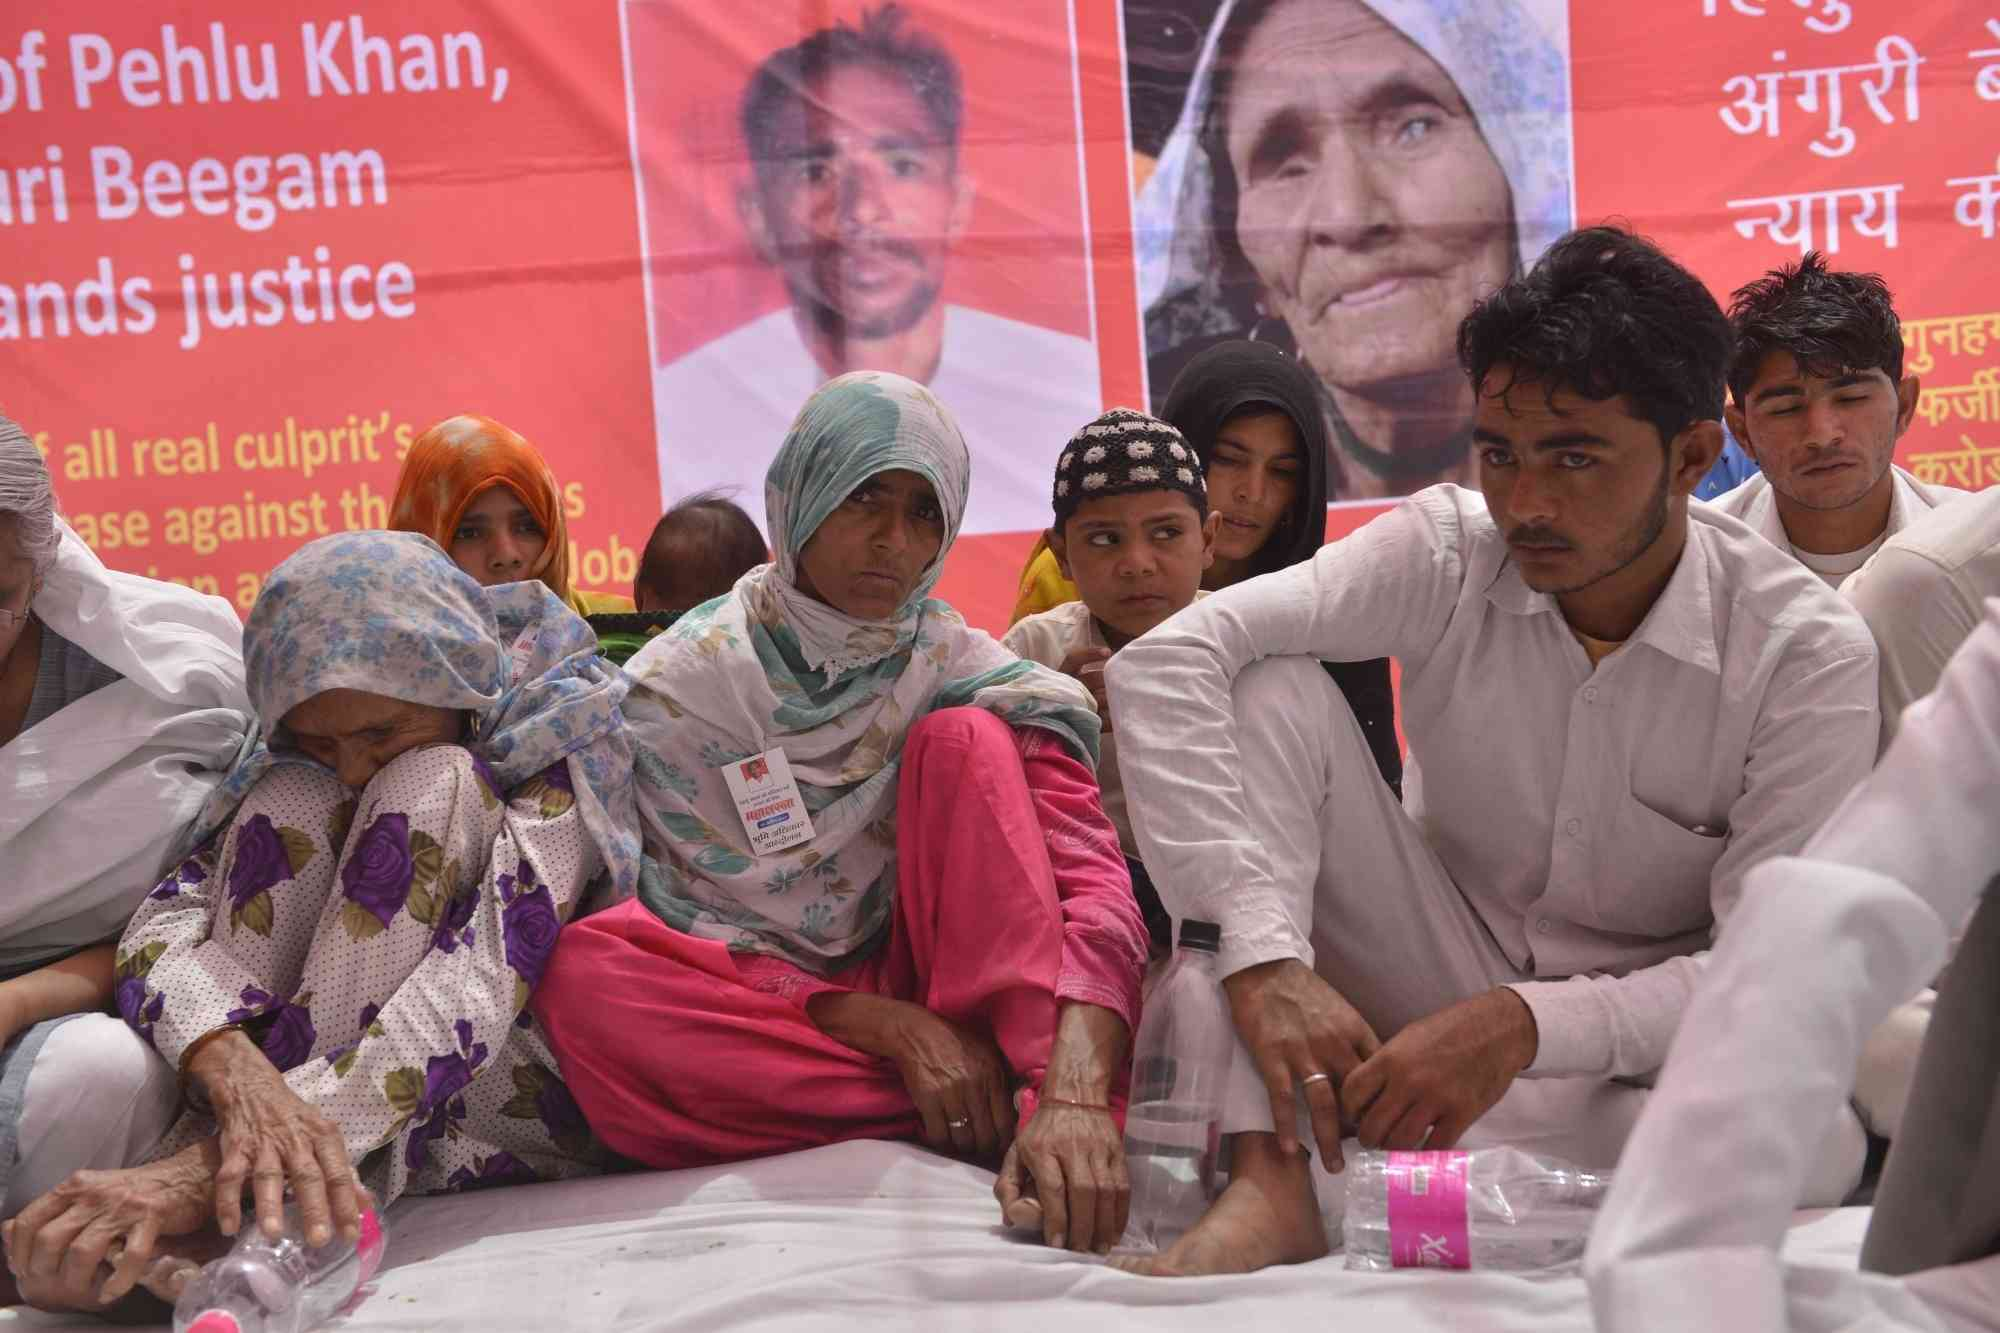 Mother of dairy farmer Pehlu Khan along with her family members stage a sit-in demonstration to demand justice for him, in New Delhi on April 19, 2017. (Photo credit: IANS).